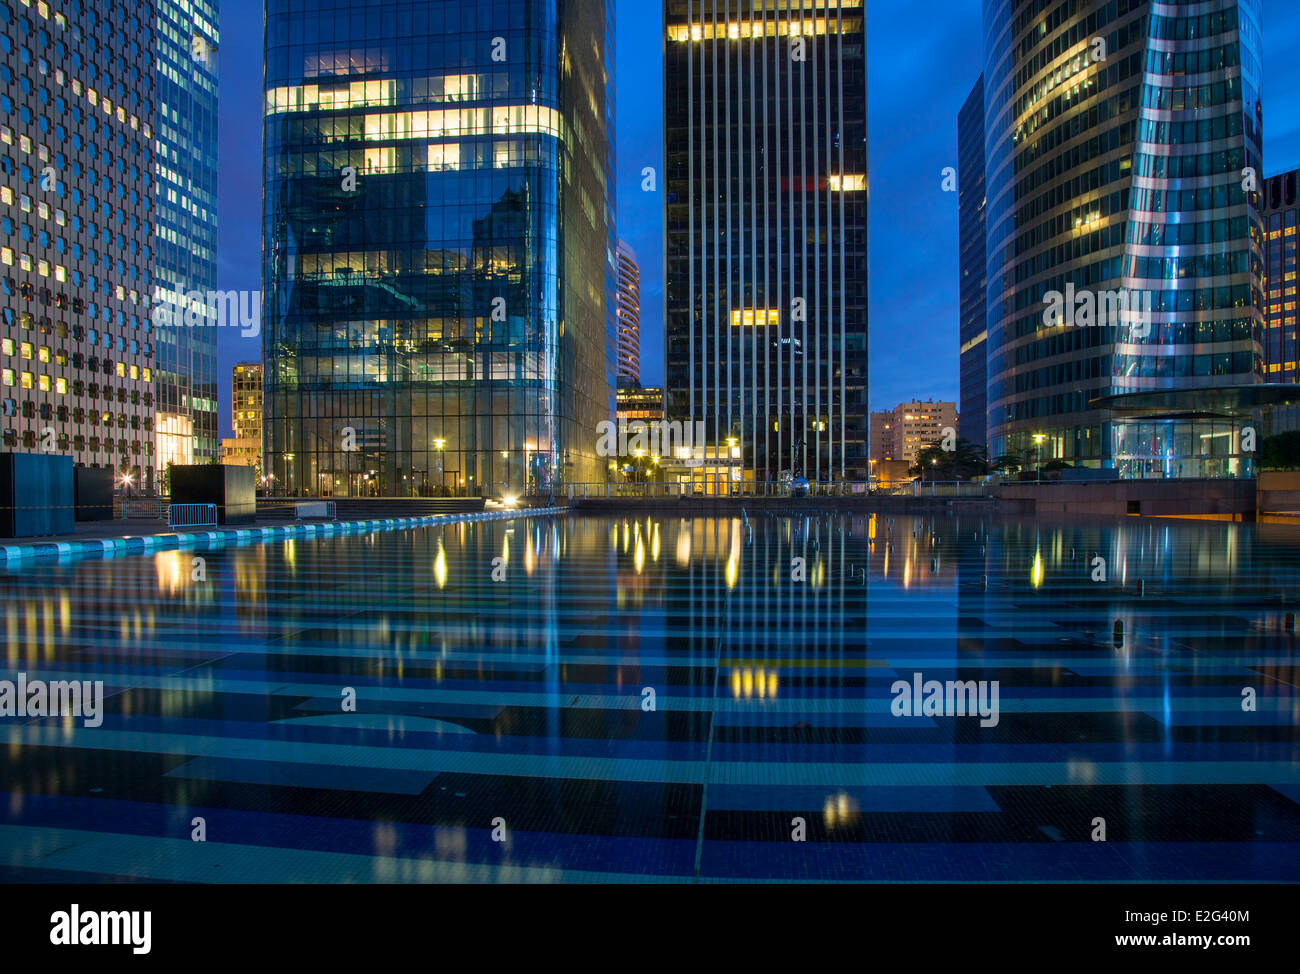 Modern buildings and reflections in La Defense district, Paris France - Stock Image